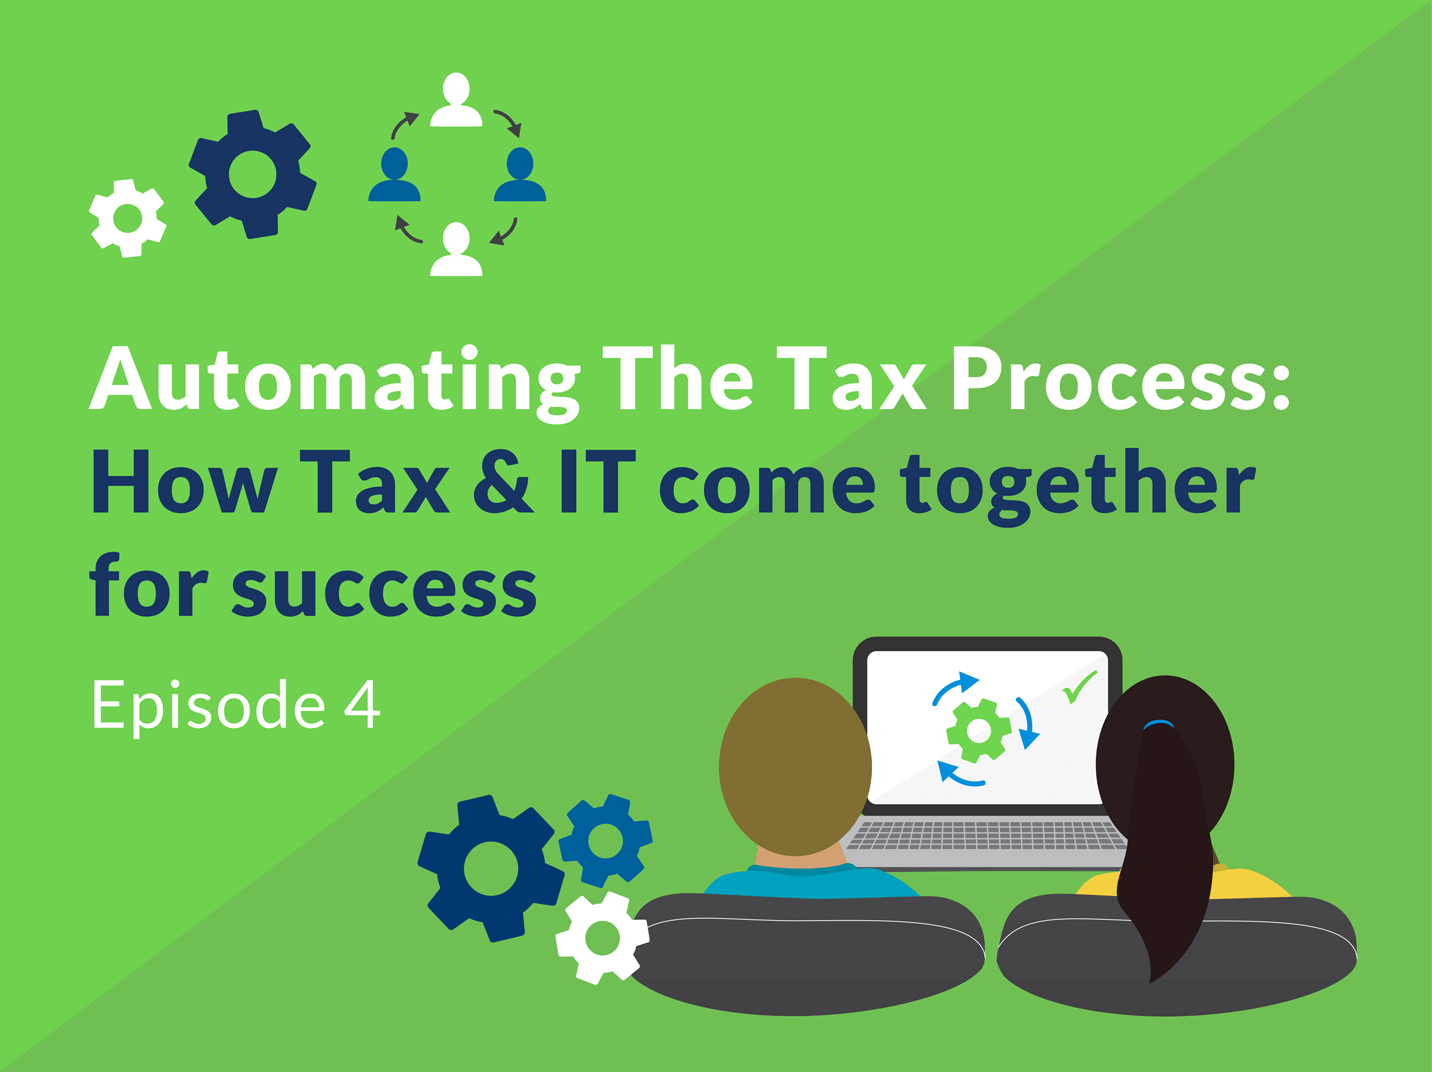 Automating Tax Processes: How Tax & IT Come Together for Success